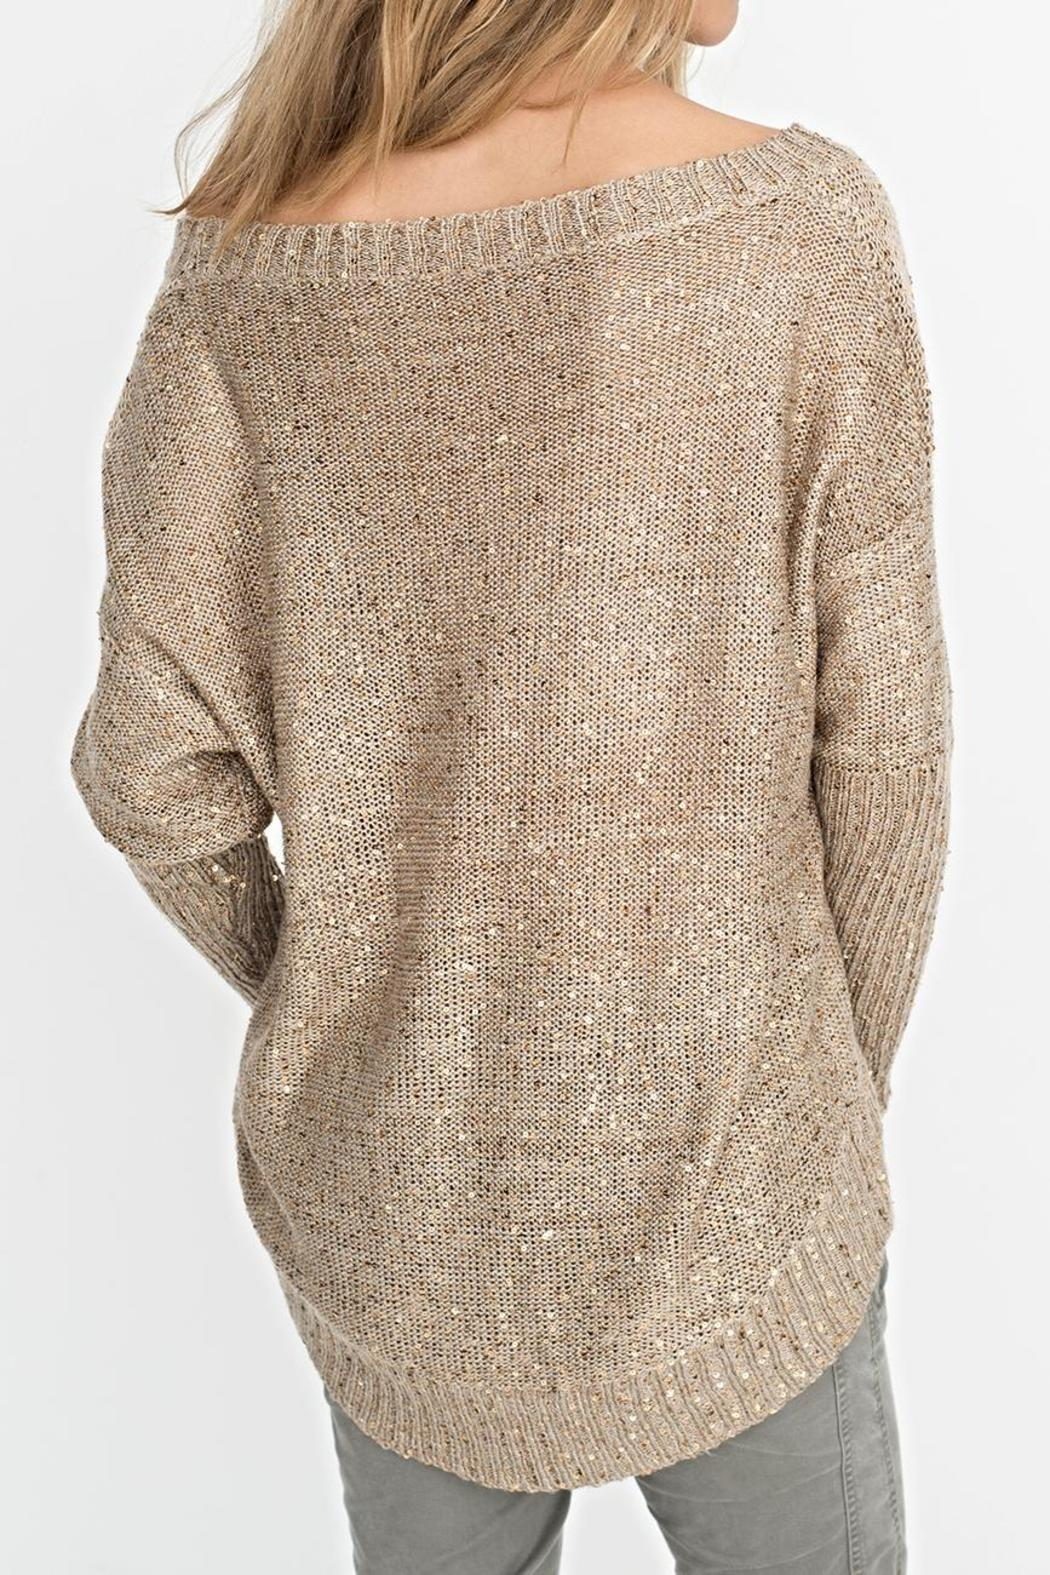 2 Chic Gold Shimmer Sweater - Side Cropped Image